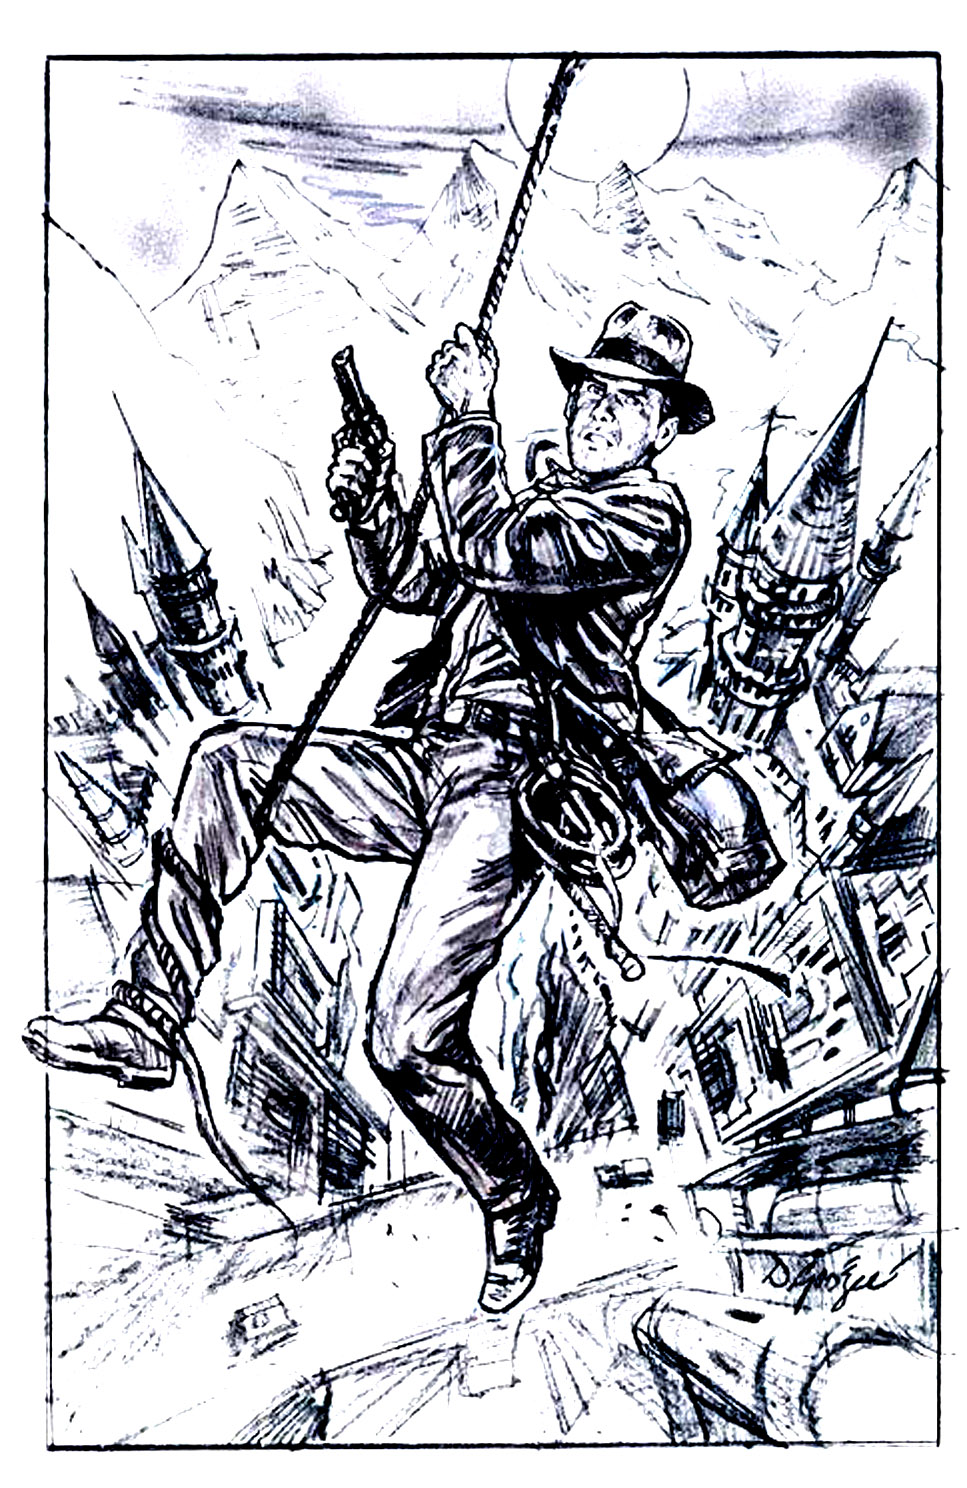 Indiana jones crusade ebauche affiche coloriages - Coloriage indiana jones ...